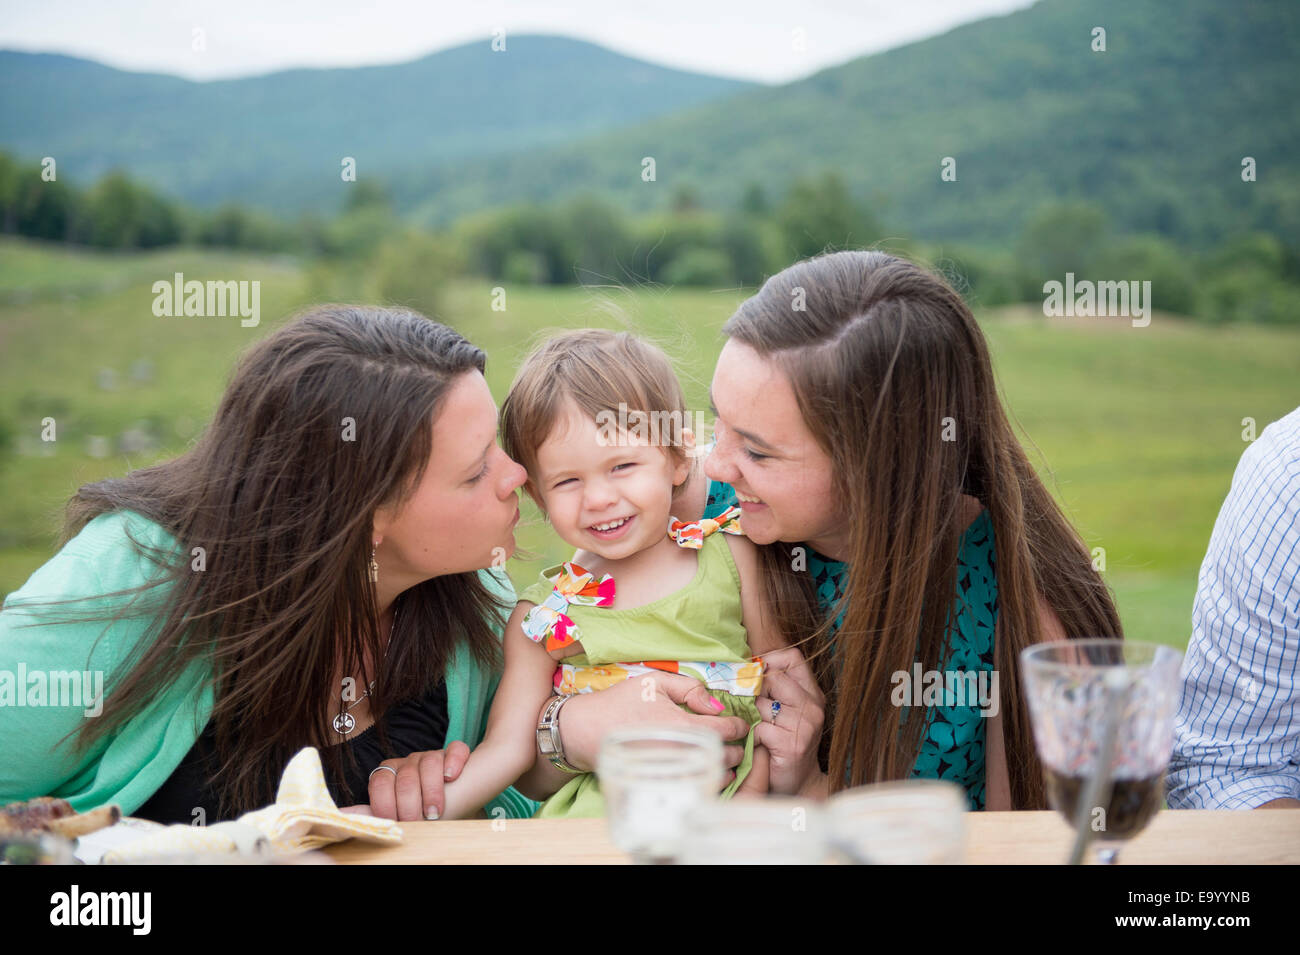 Baby girl sitting between two young women - Stock Image